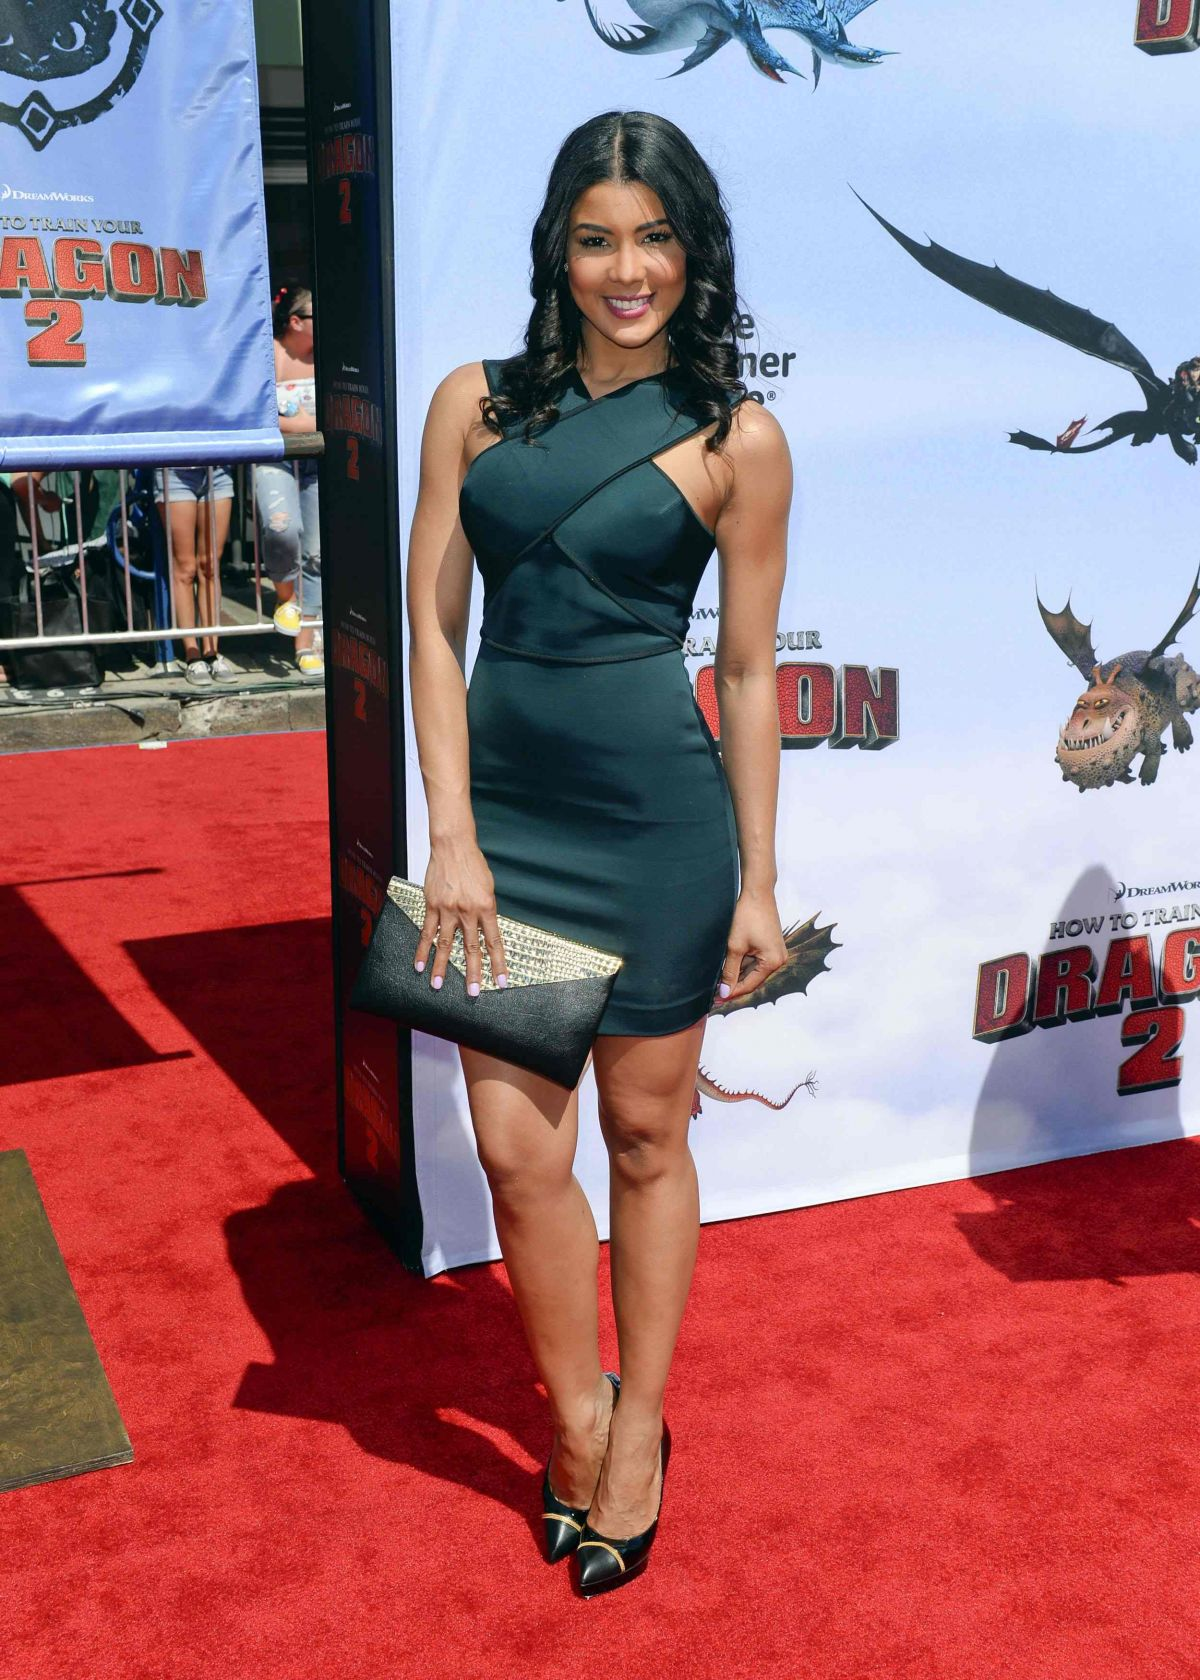 sarodj-bertin-at-how-to-train-your-dragon-2-premiere-in-los-angeles_1